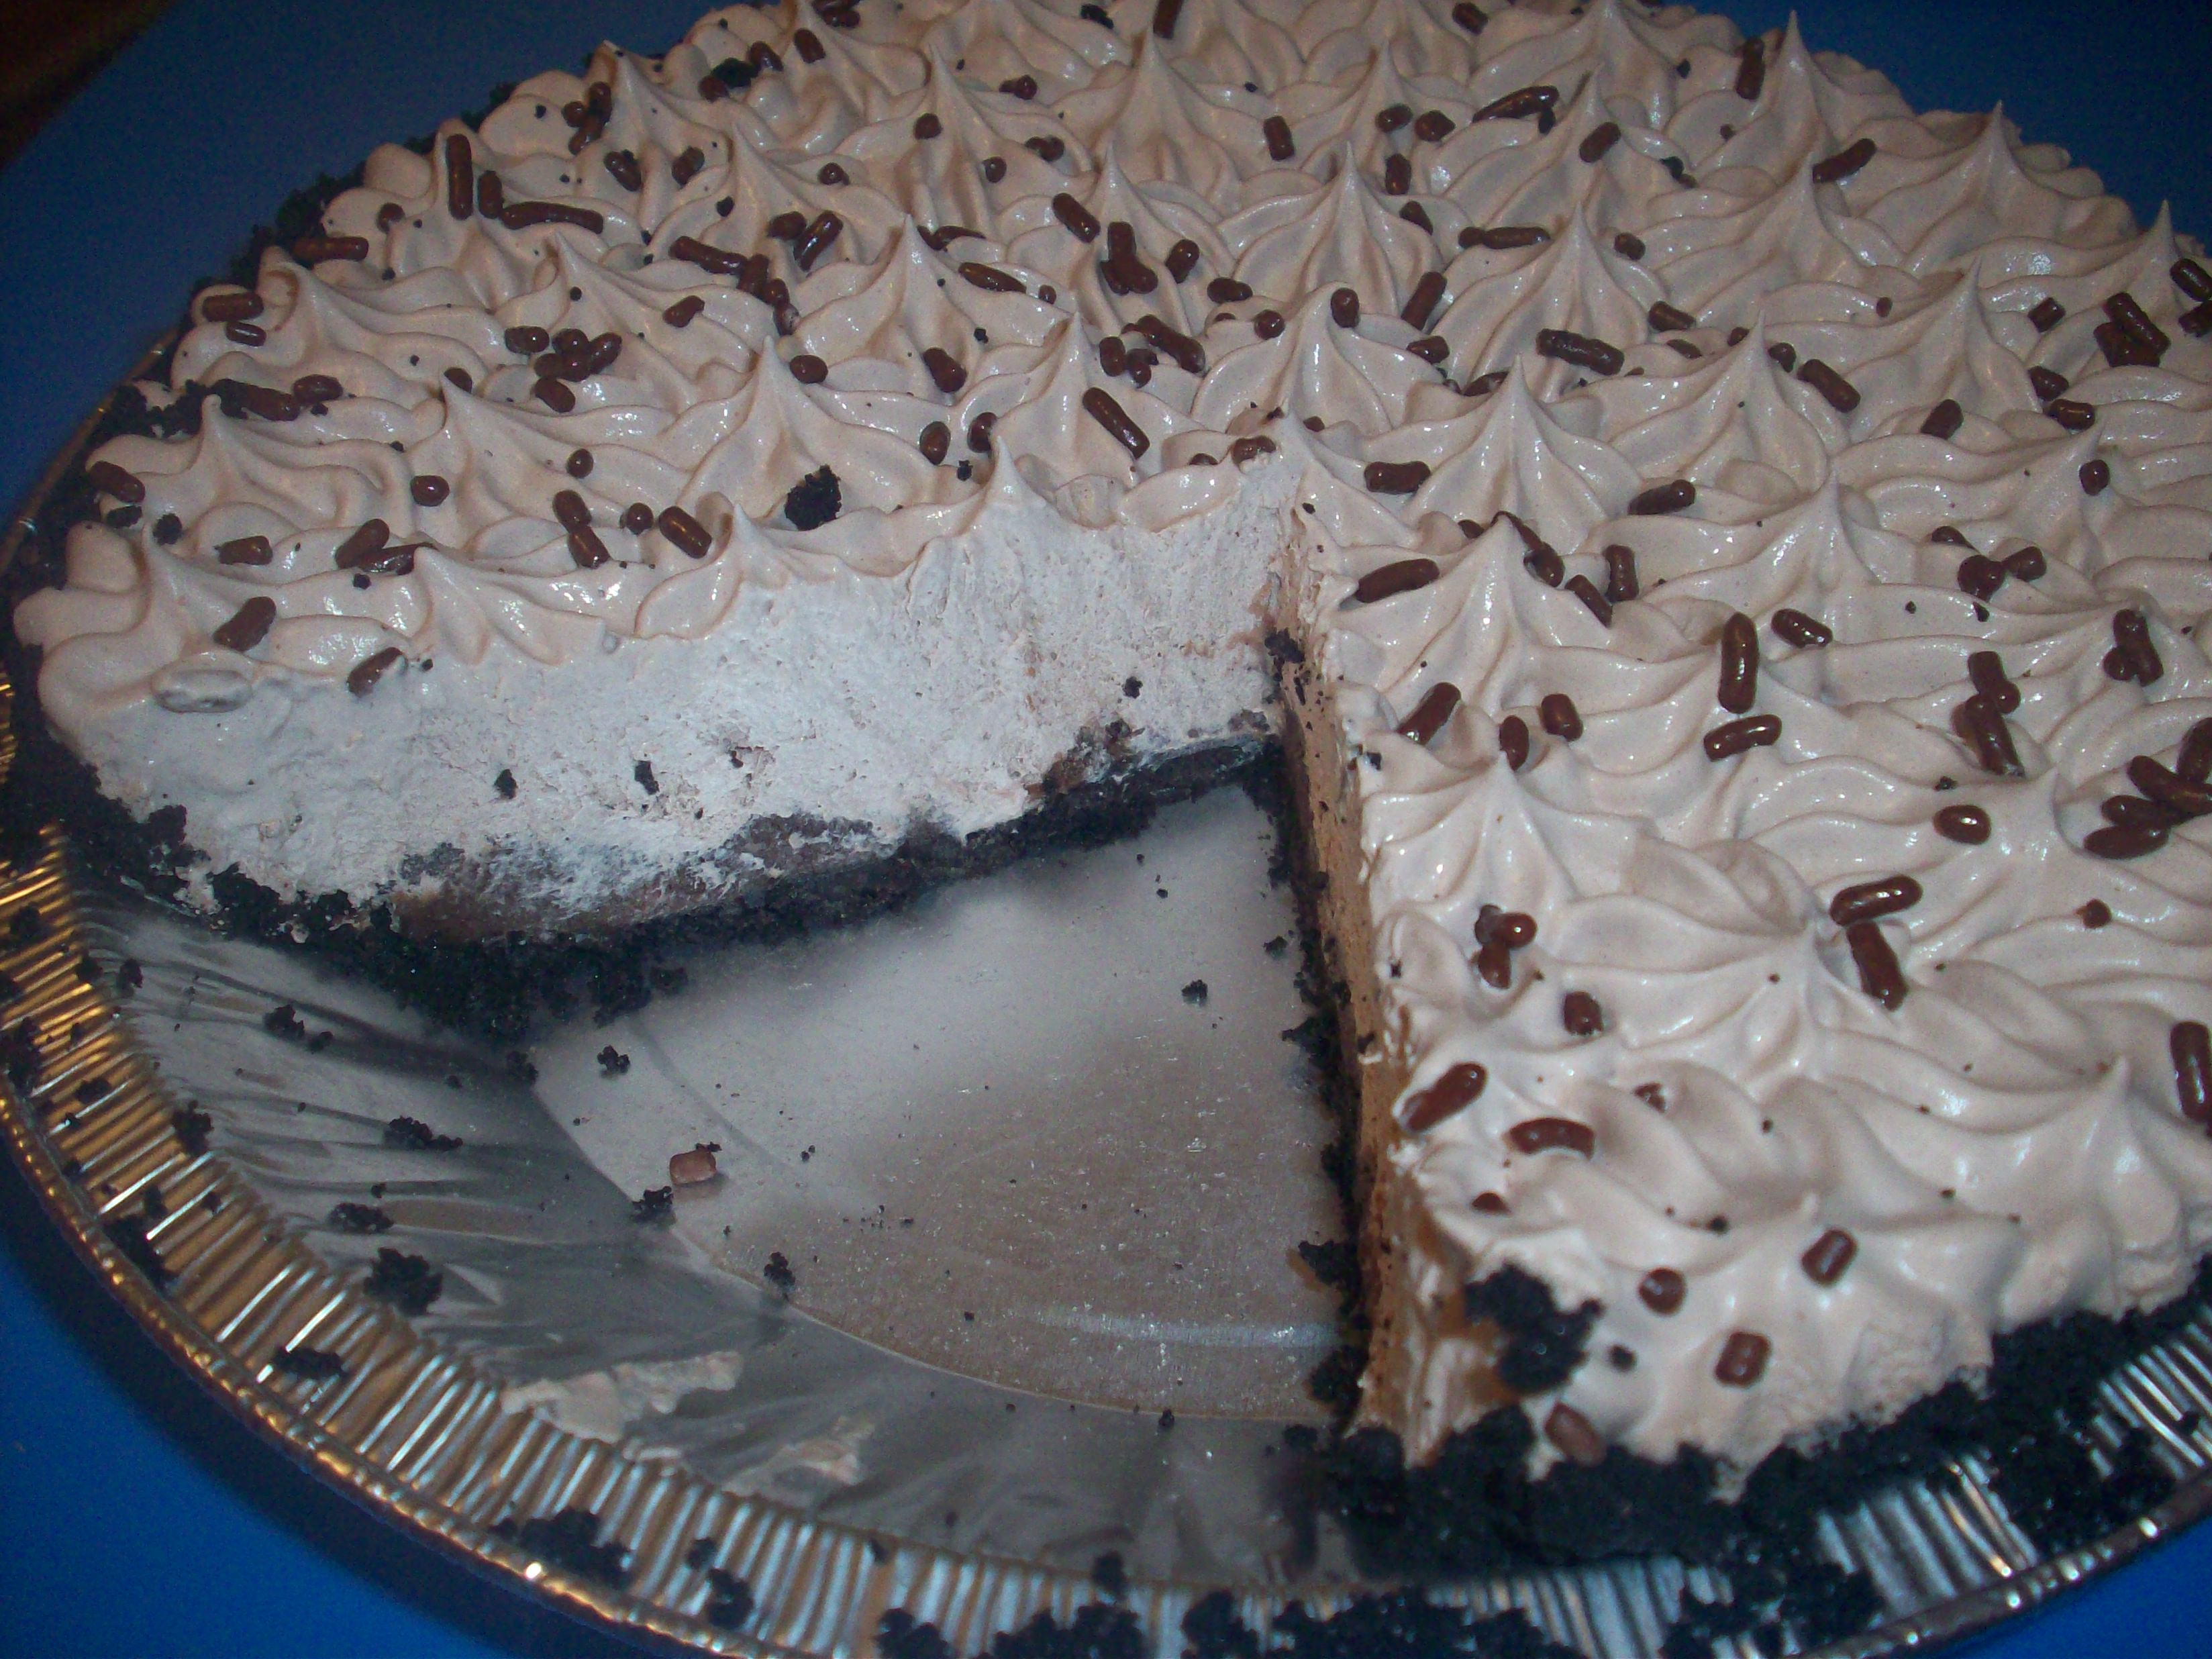 http://foodloader.net/cutie_2010-04-21_KFCs_Triple_Chocolate_Mud_Pie.jpg